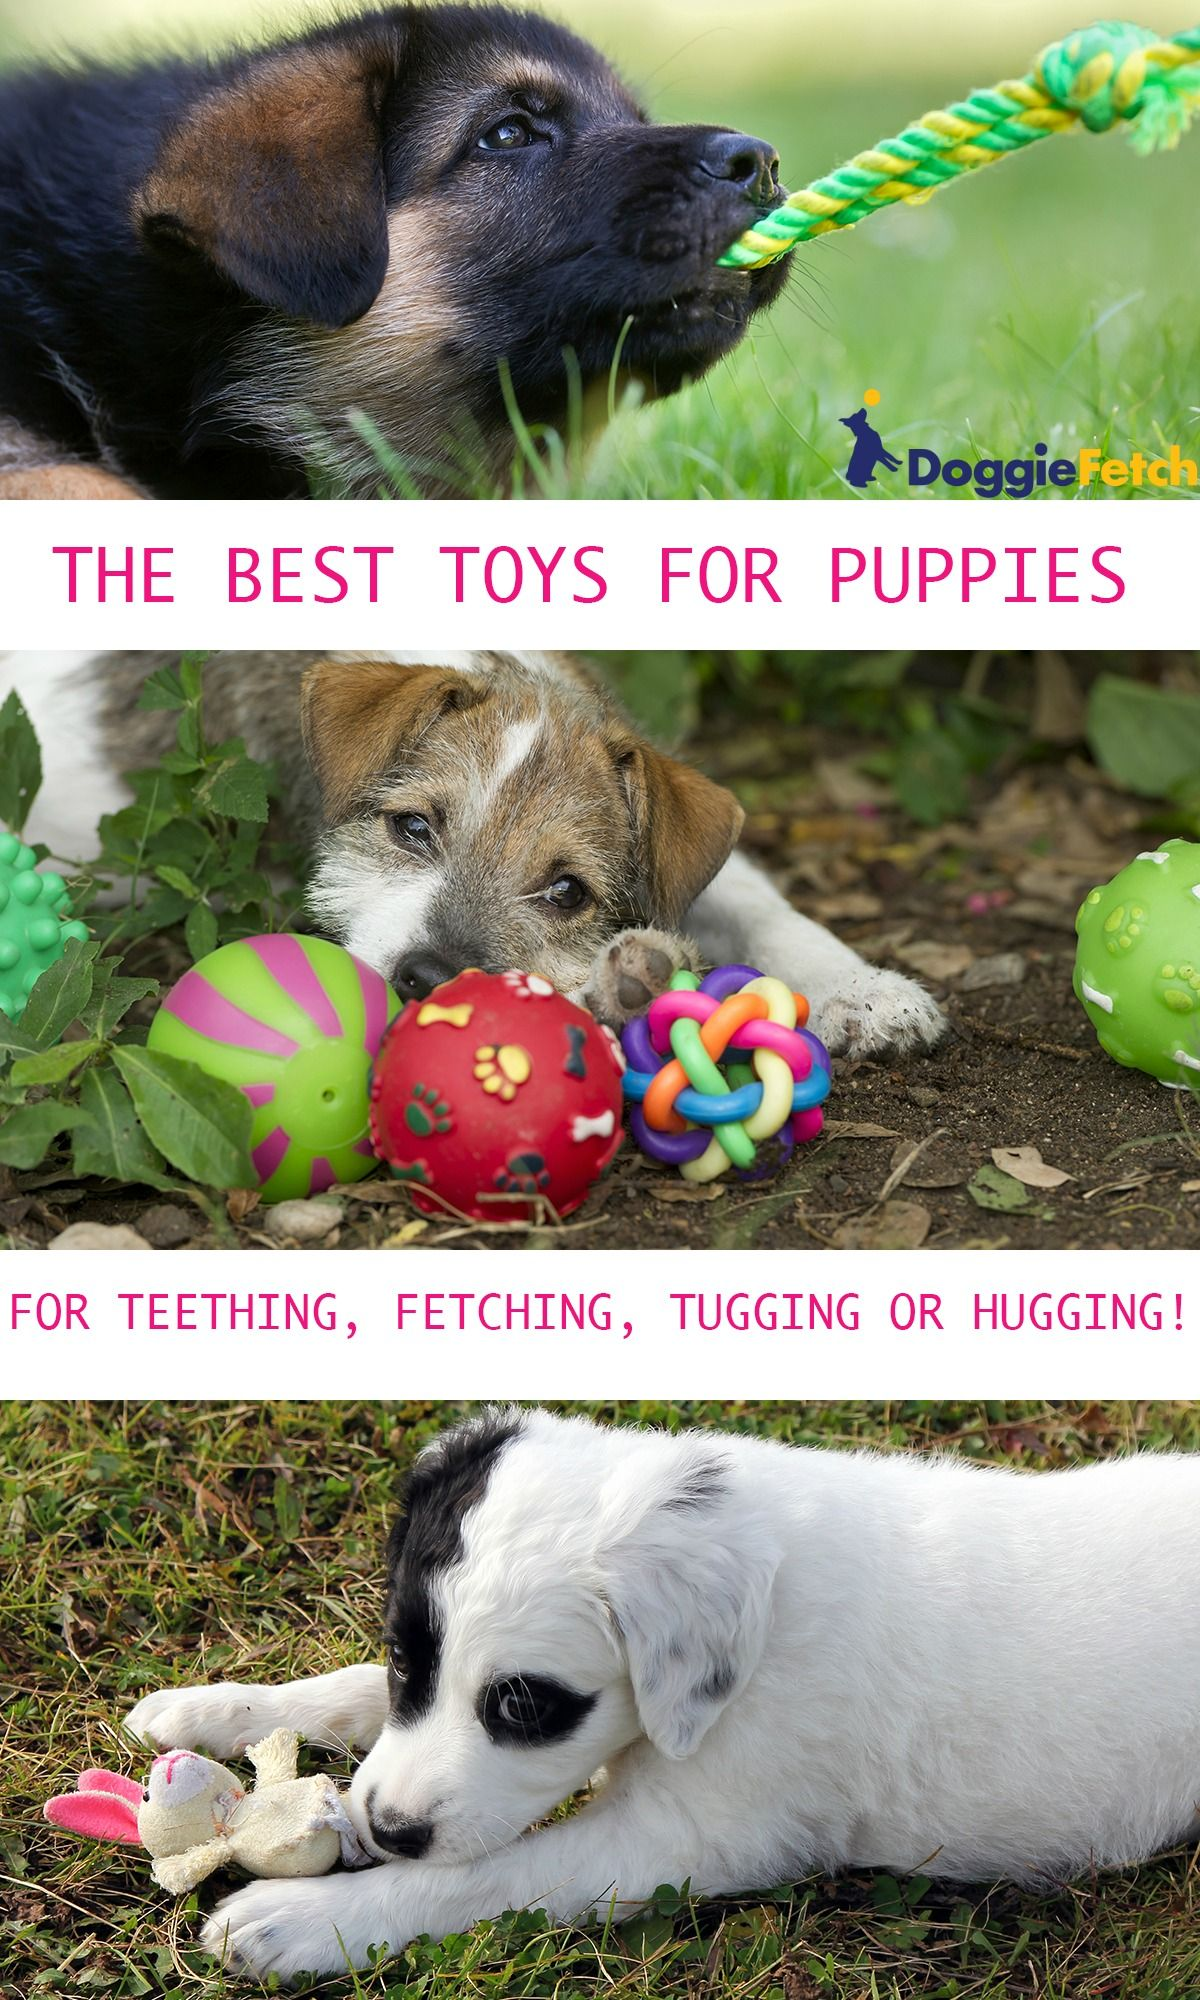 Puppy Toys For Teething Growing Puppies And Soothing Gums Best Toys For Puppies Puppy Toys Teething Puppy Teething